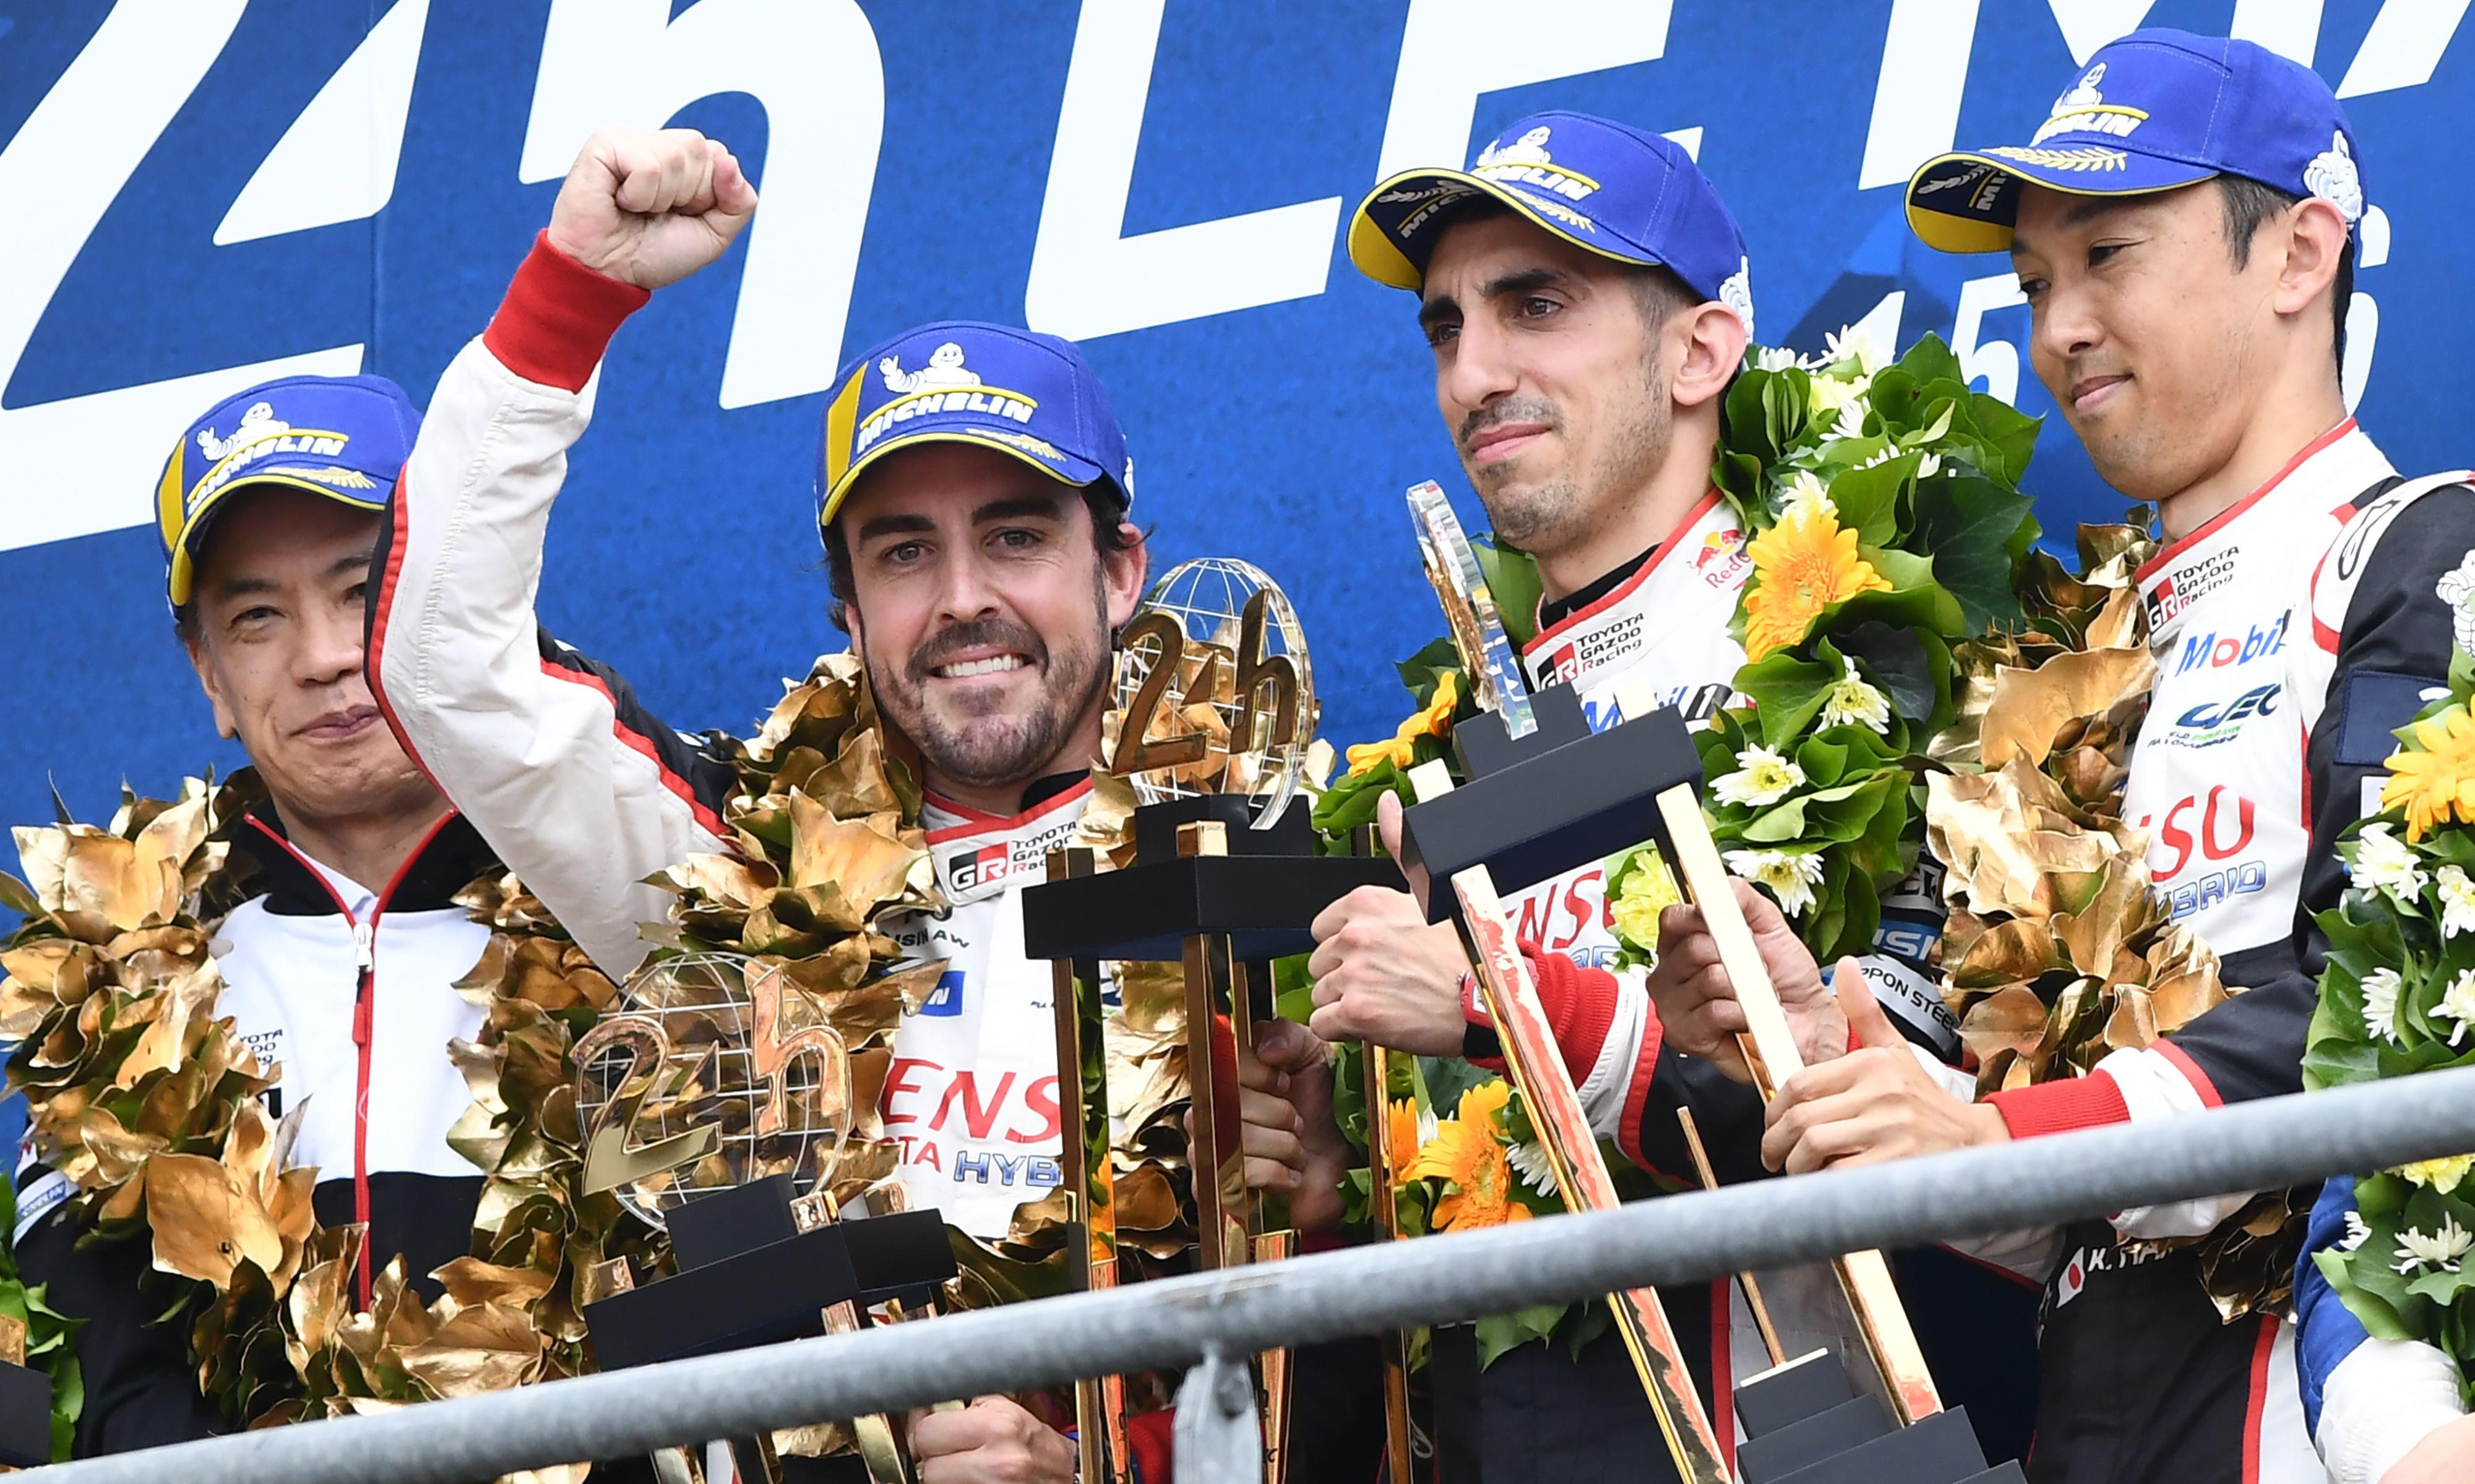 Le Mans 24 Hours: Alonso's Toyota team win after rivals change wrong tyre